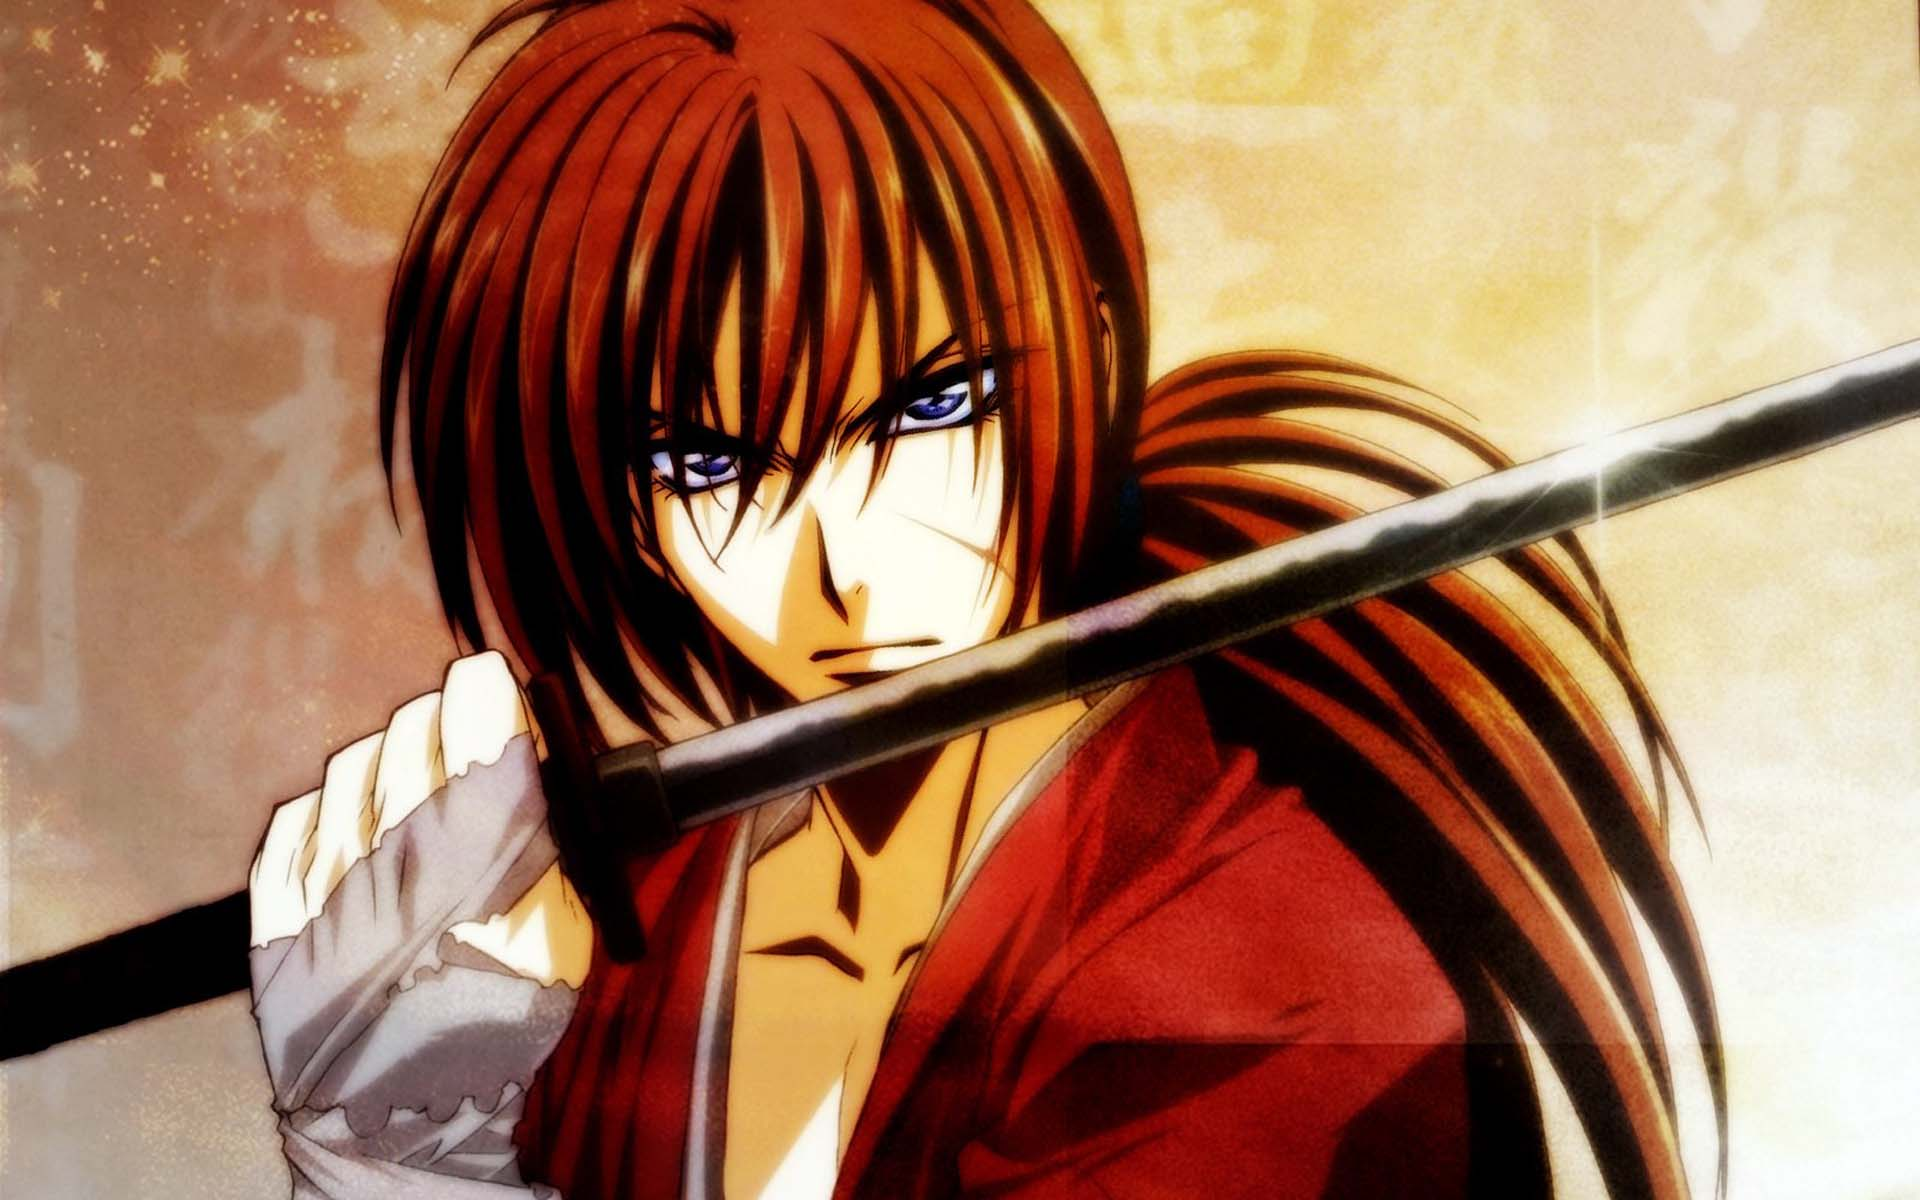 kenshin himura wallpaper - photo #35